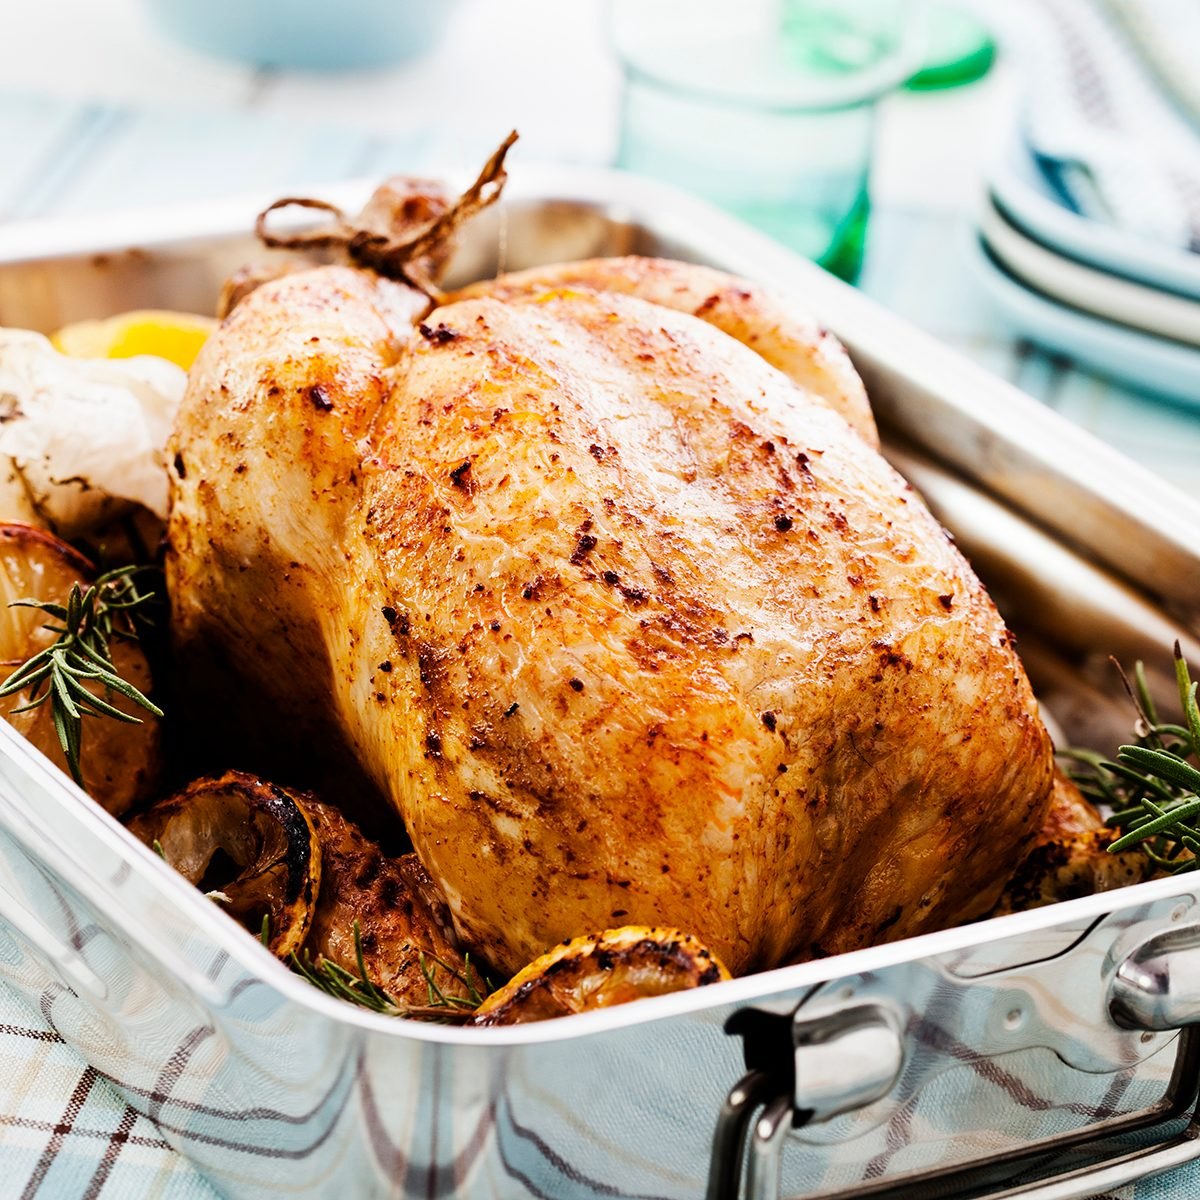 Roasted turkey in a pan with lemon, garlic and rosemary